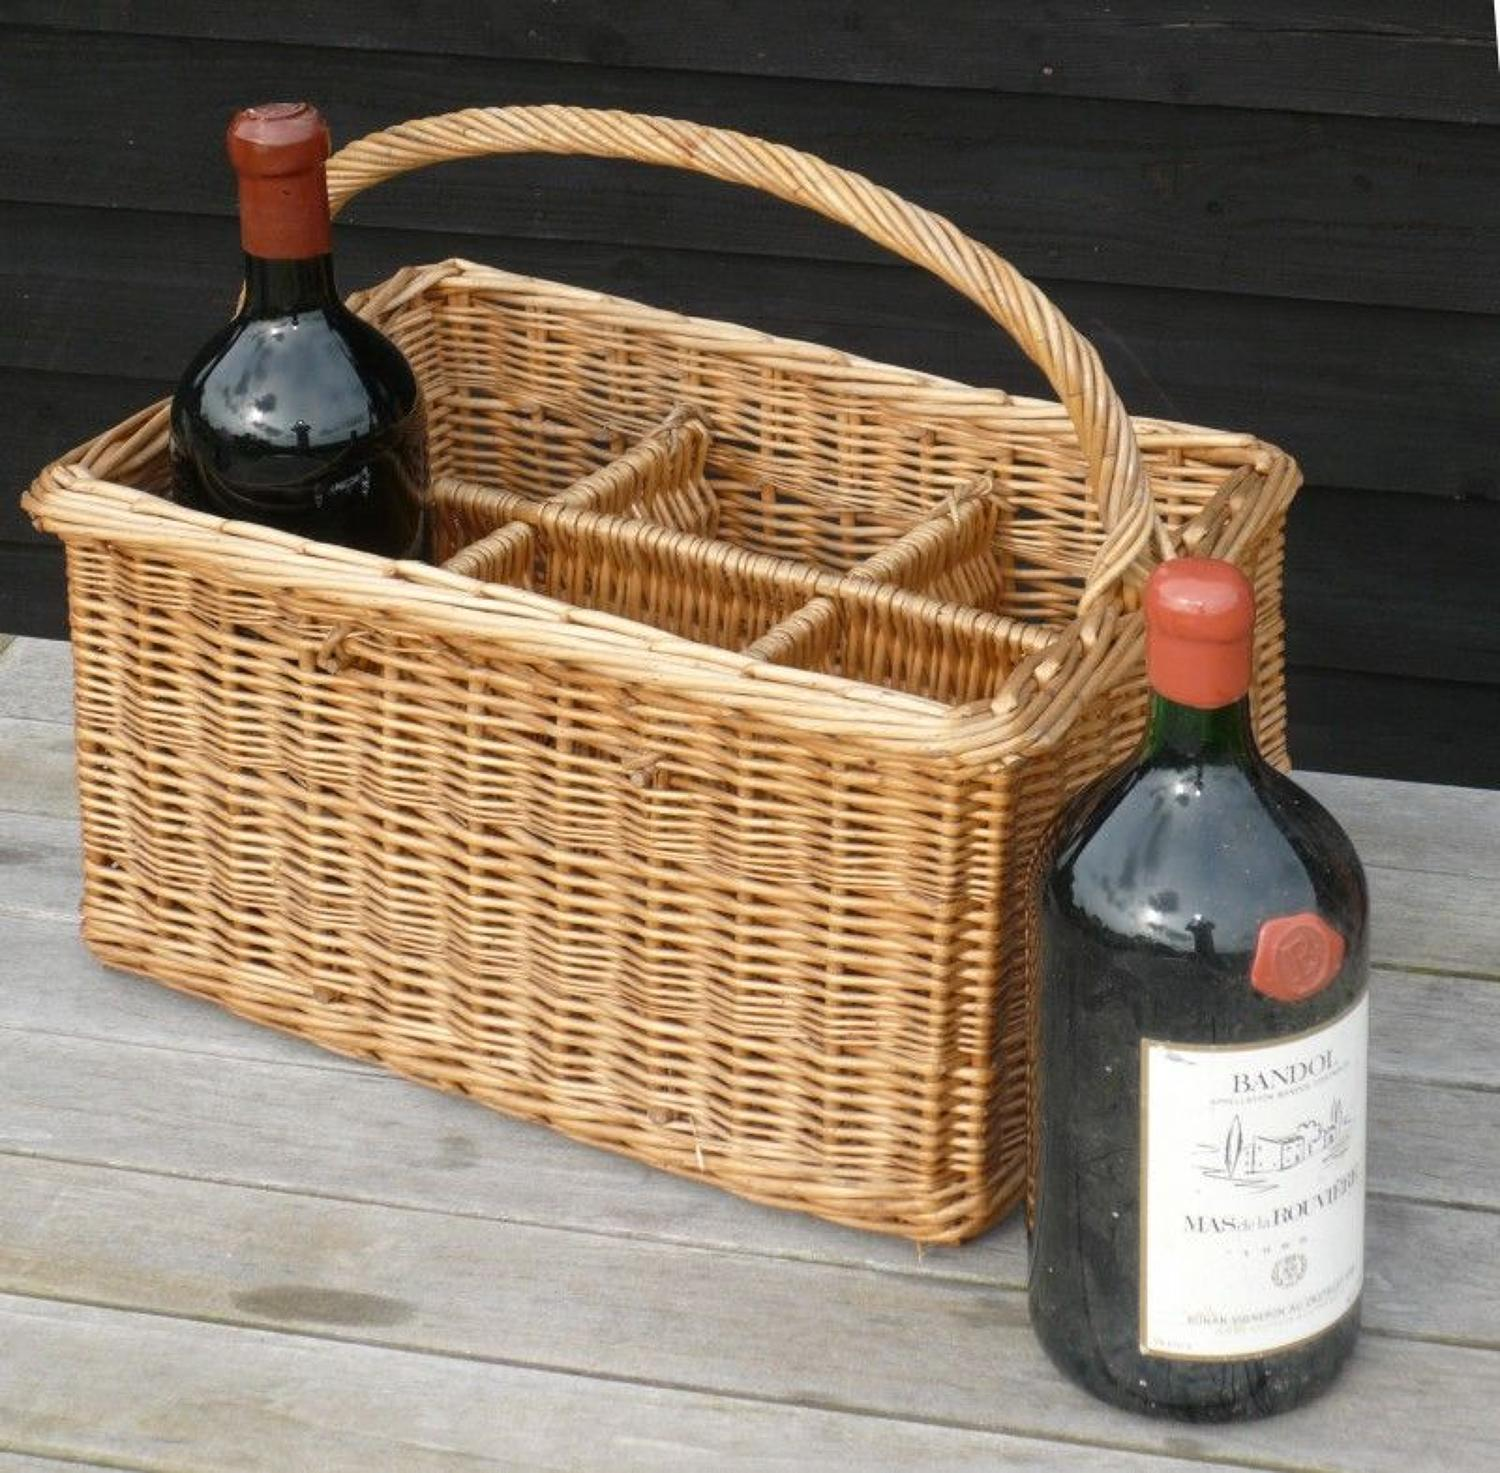 9869 A bottle basket for six double magnums